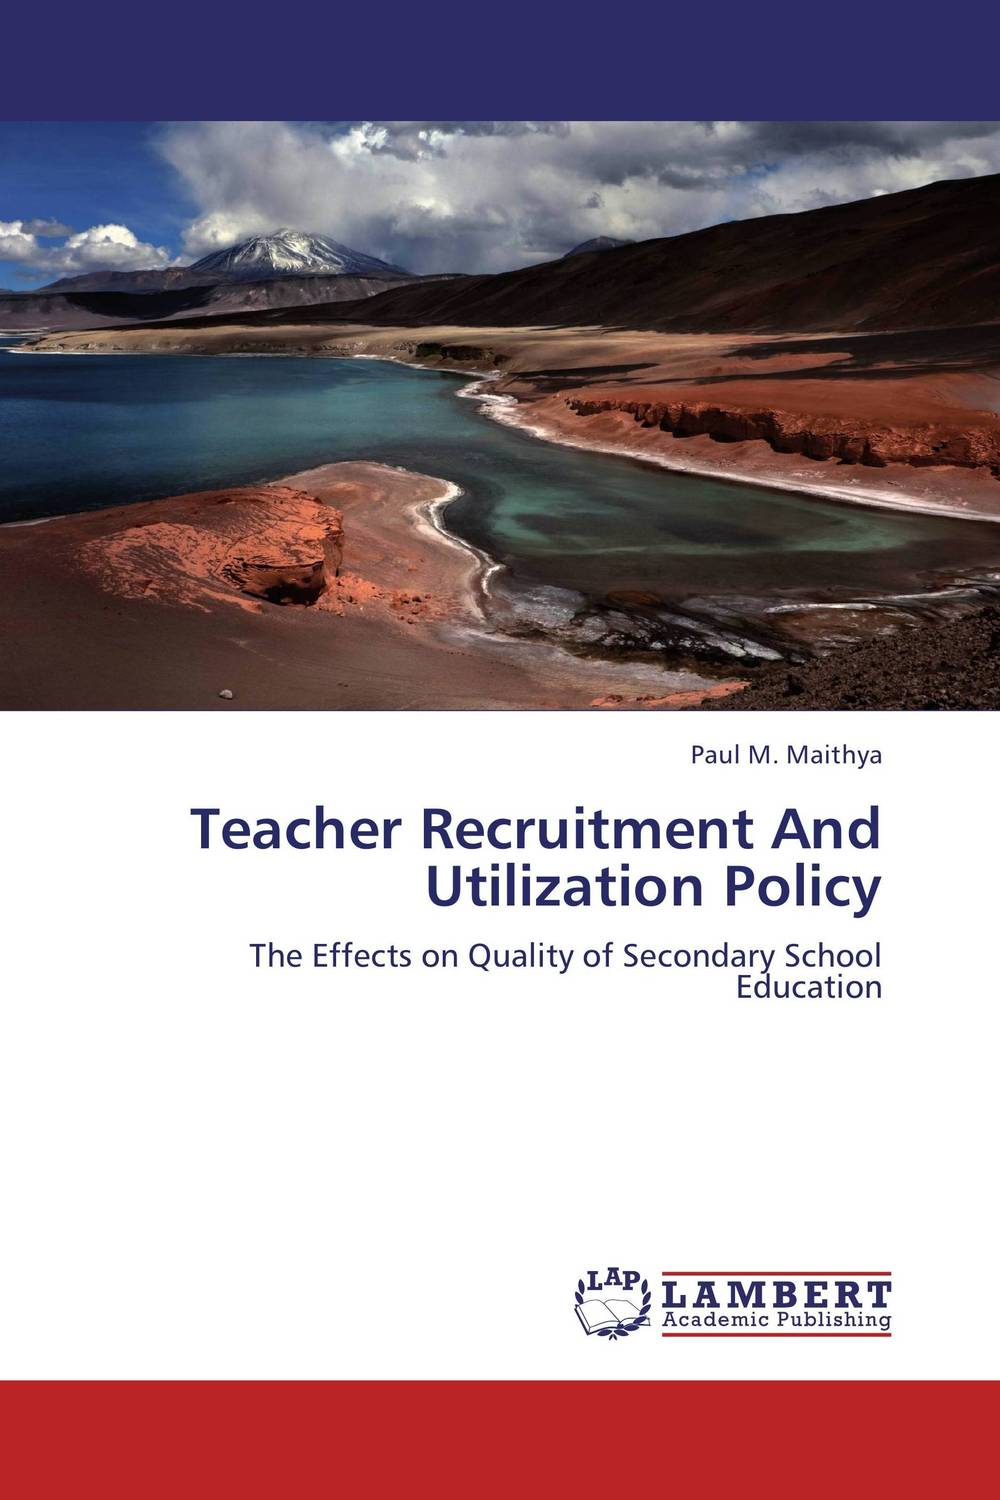 Teacher Recruitment And Utilization Policy driven to distraction